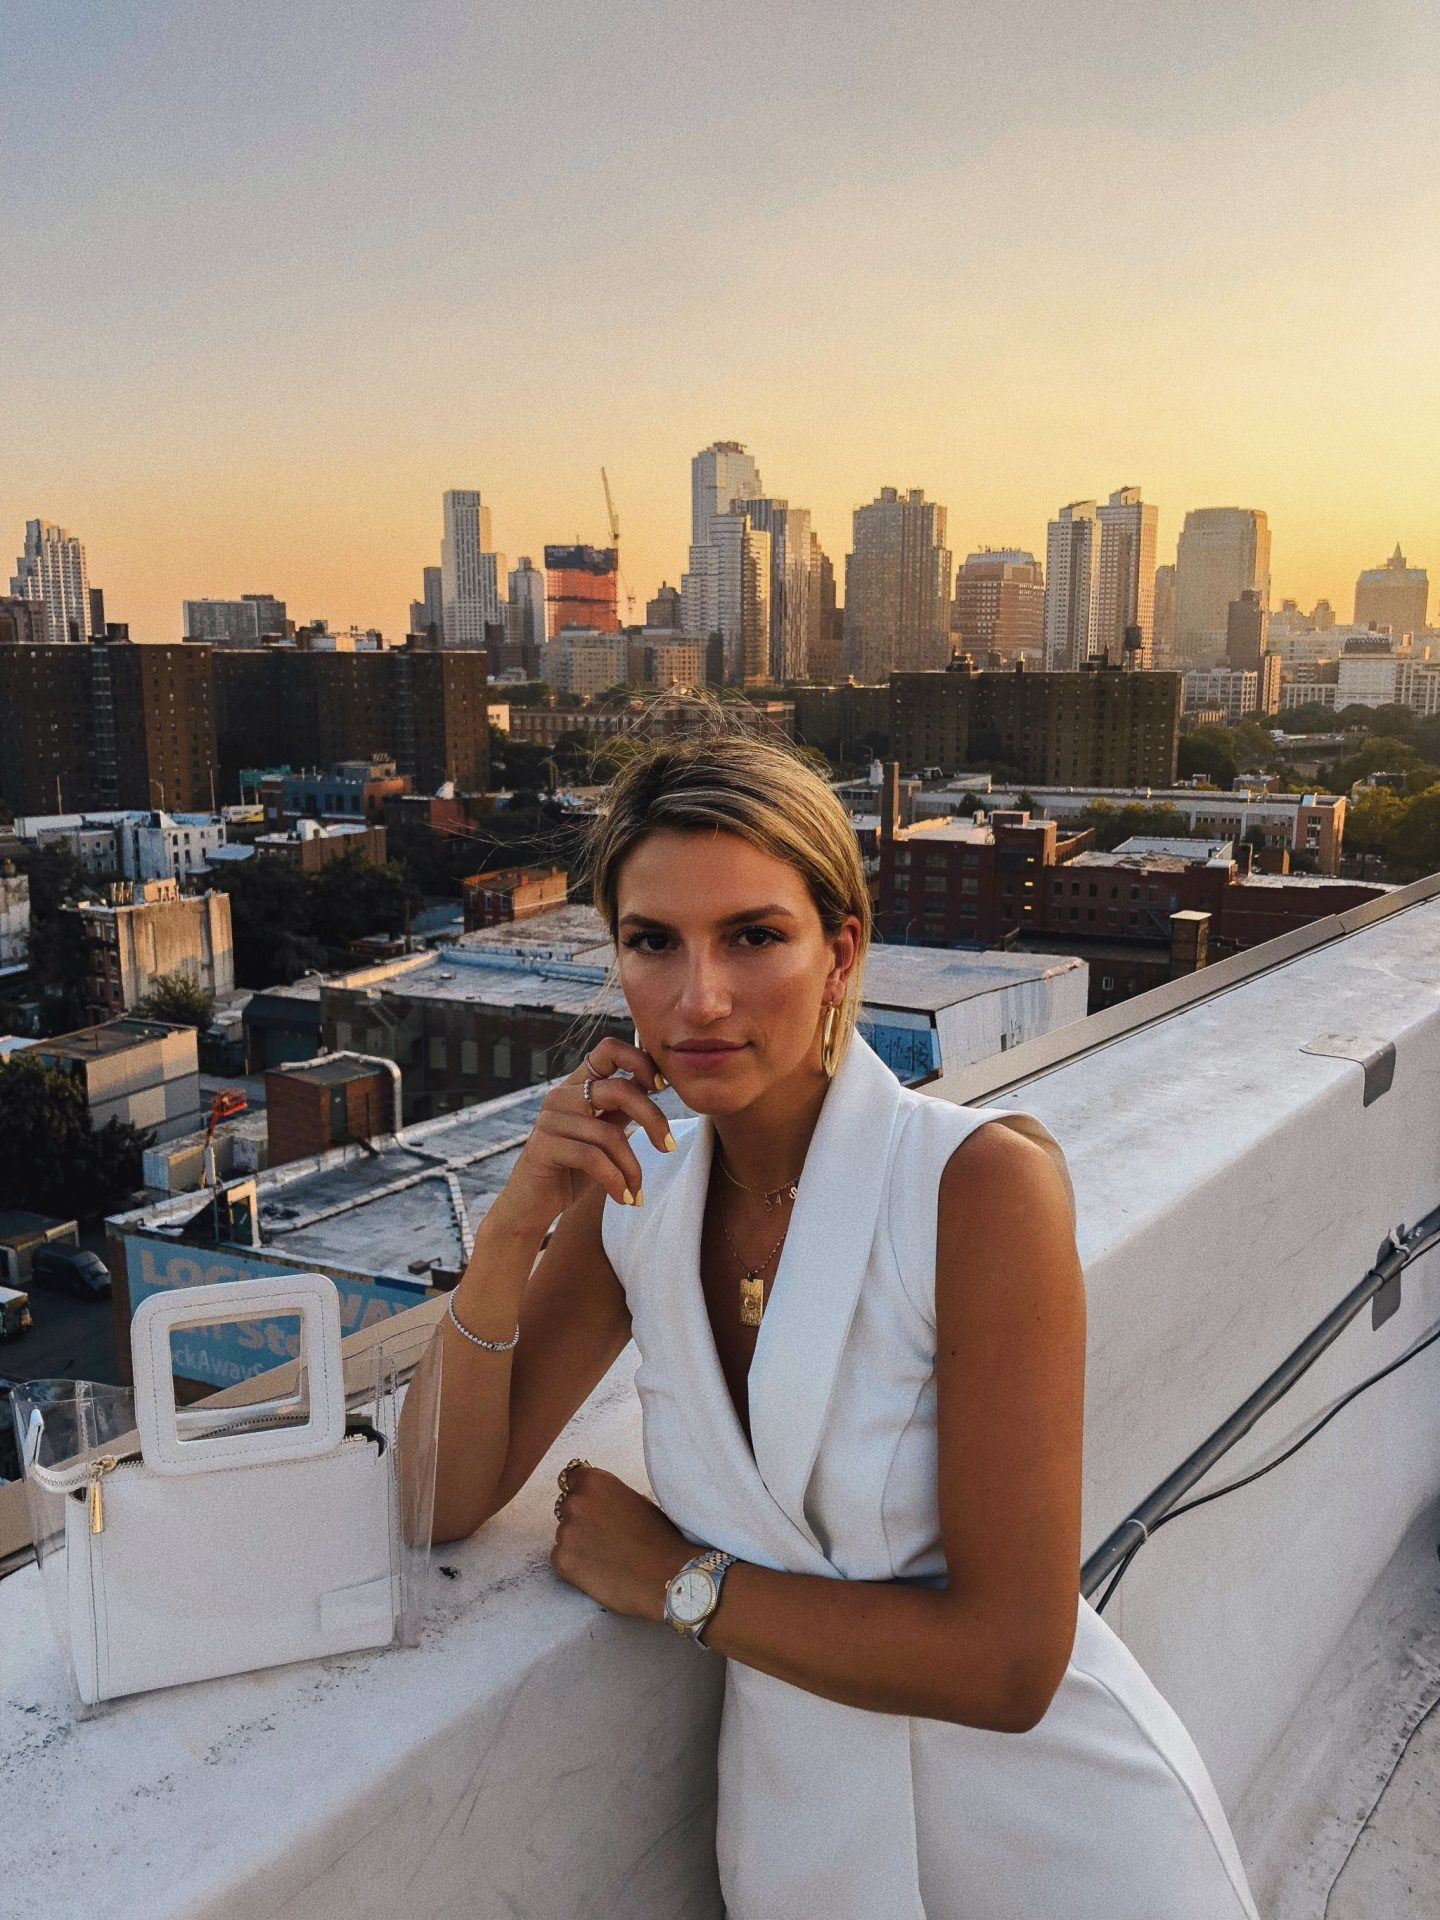 Cassandra DiMicco, Cass DiMicco, Dressed For Dreams, NYC, New York City, New York, Street Style NYC, Street Style 2018, NYC Street Style, NYC Outfit Inspo Street Style Outfits, 2018 Trends, Summer Style, Summer Outfit Inspo, NYC Fashion Blogger, NYC Fashion Blogger, NYC to do list, NYC to do, NYC bucket list, NYC Instagram Spots, River Island, Tux Romper, River Island Mini Tux Wrap Romper, Staud PVC Tote, Staud Shirley Tote, Staud Bag